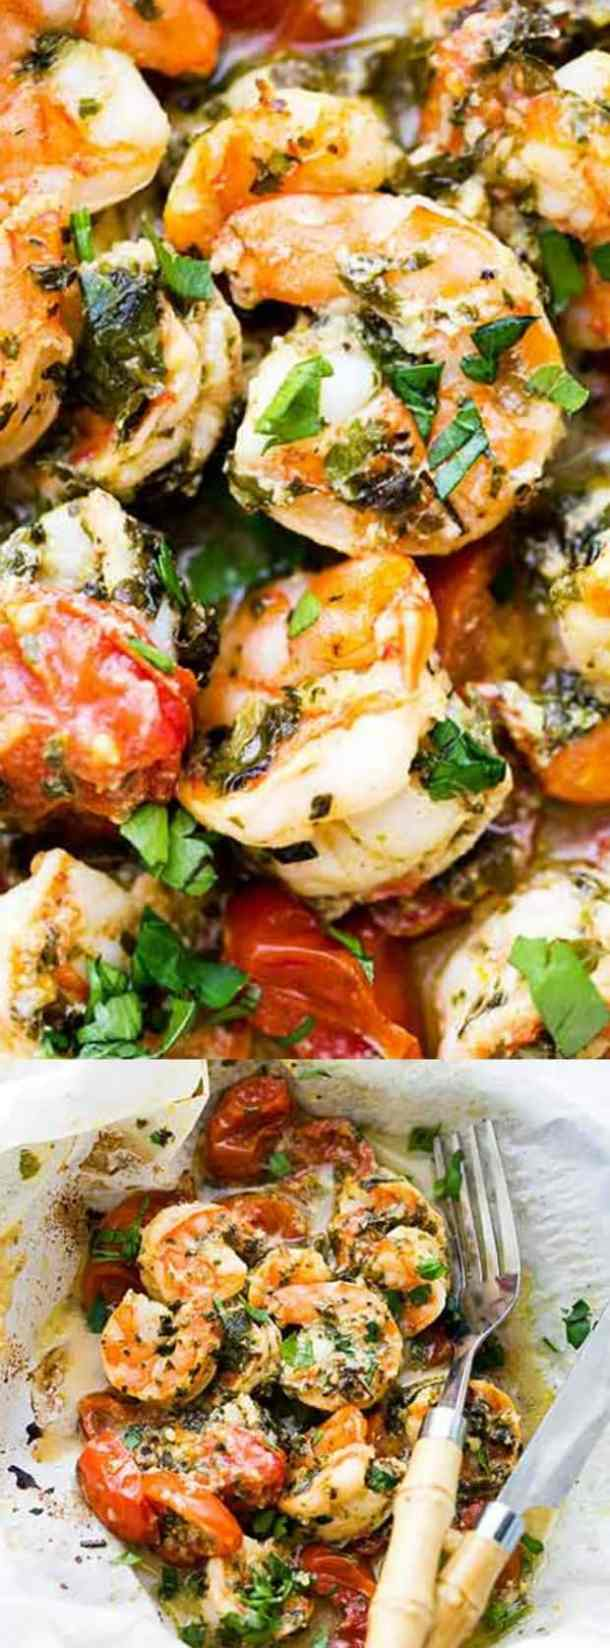 Lemon Garlic Herb Shrimp in Packets